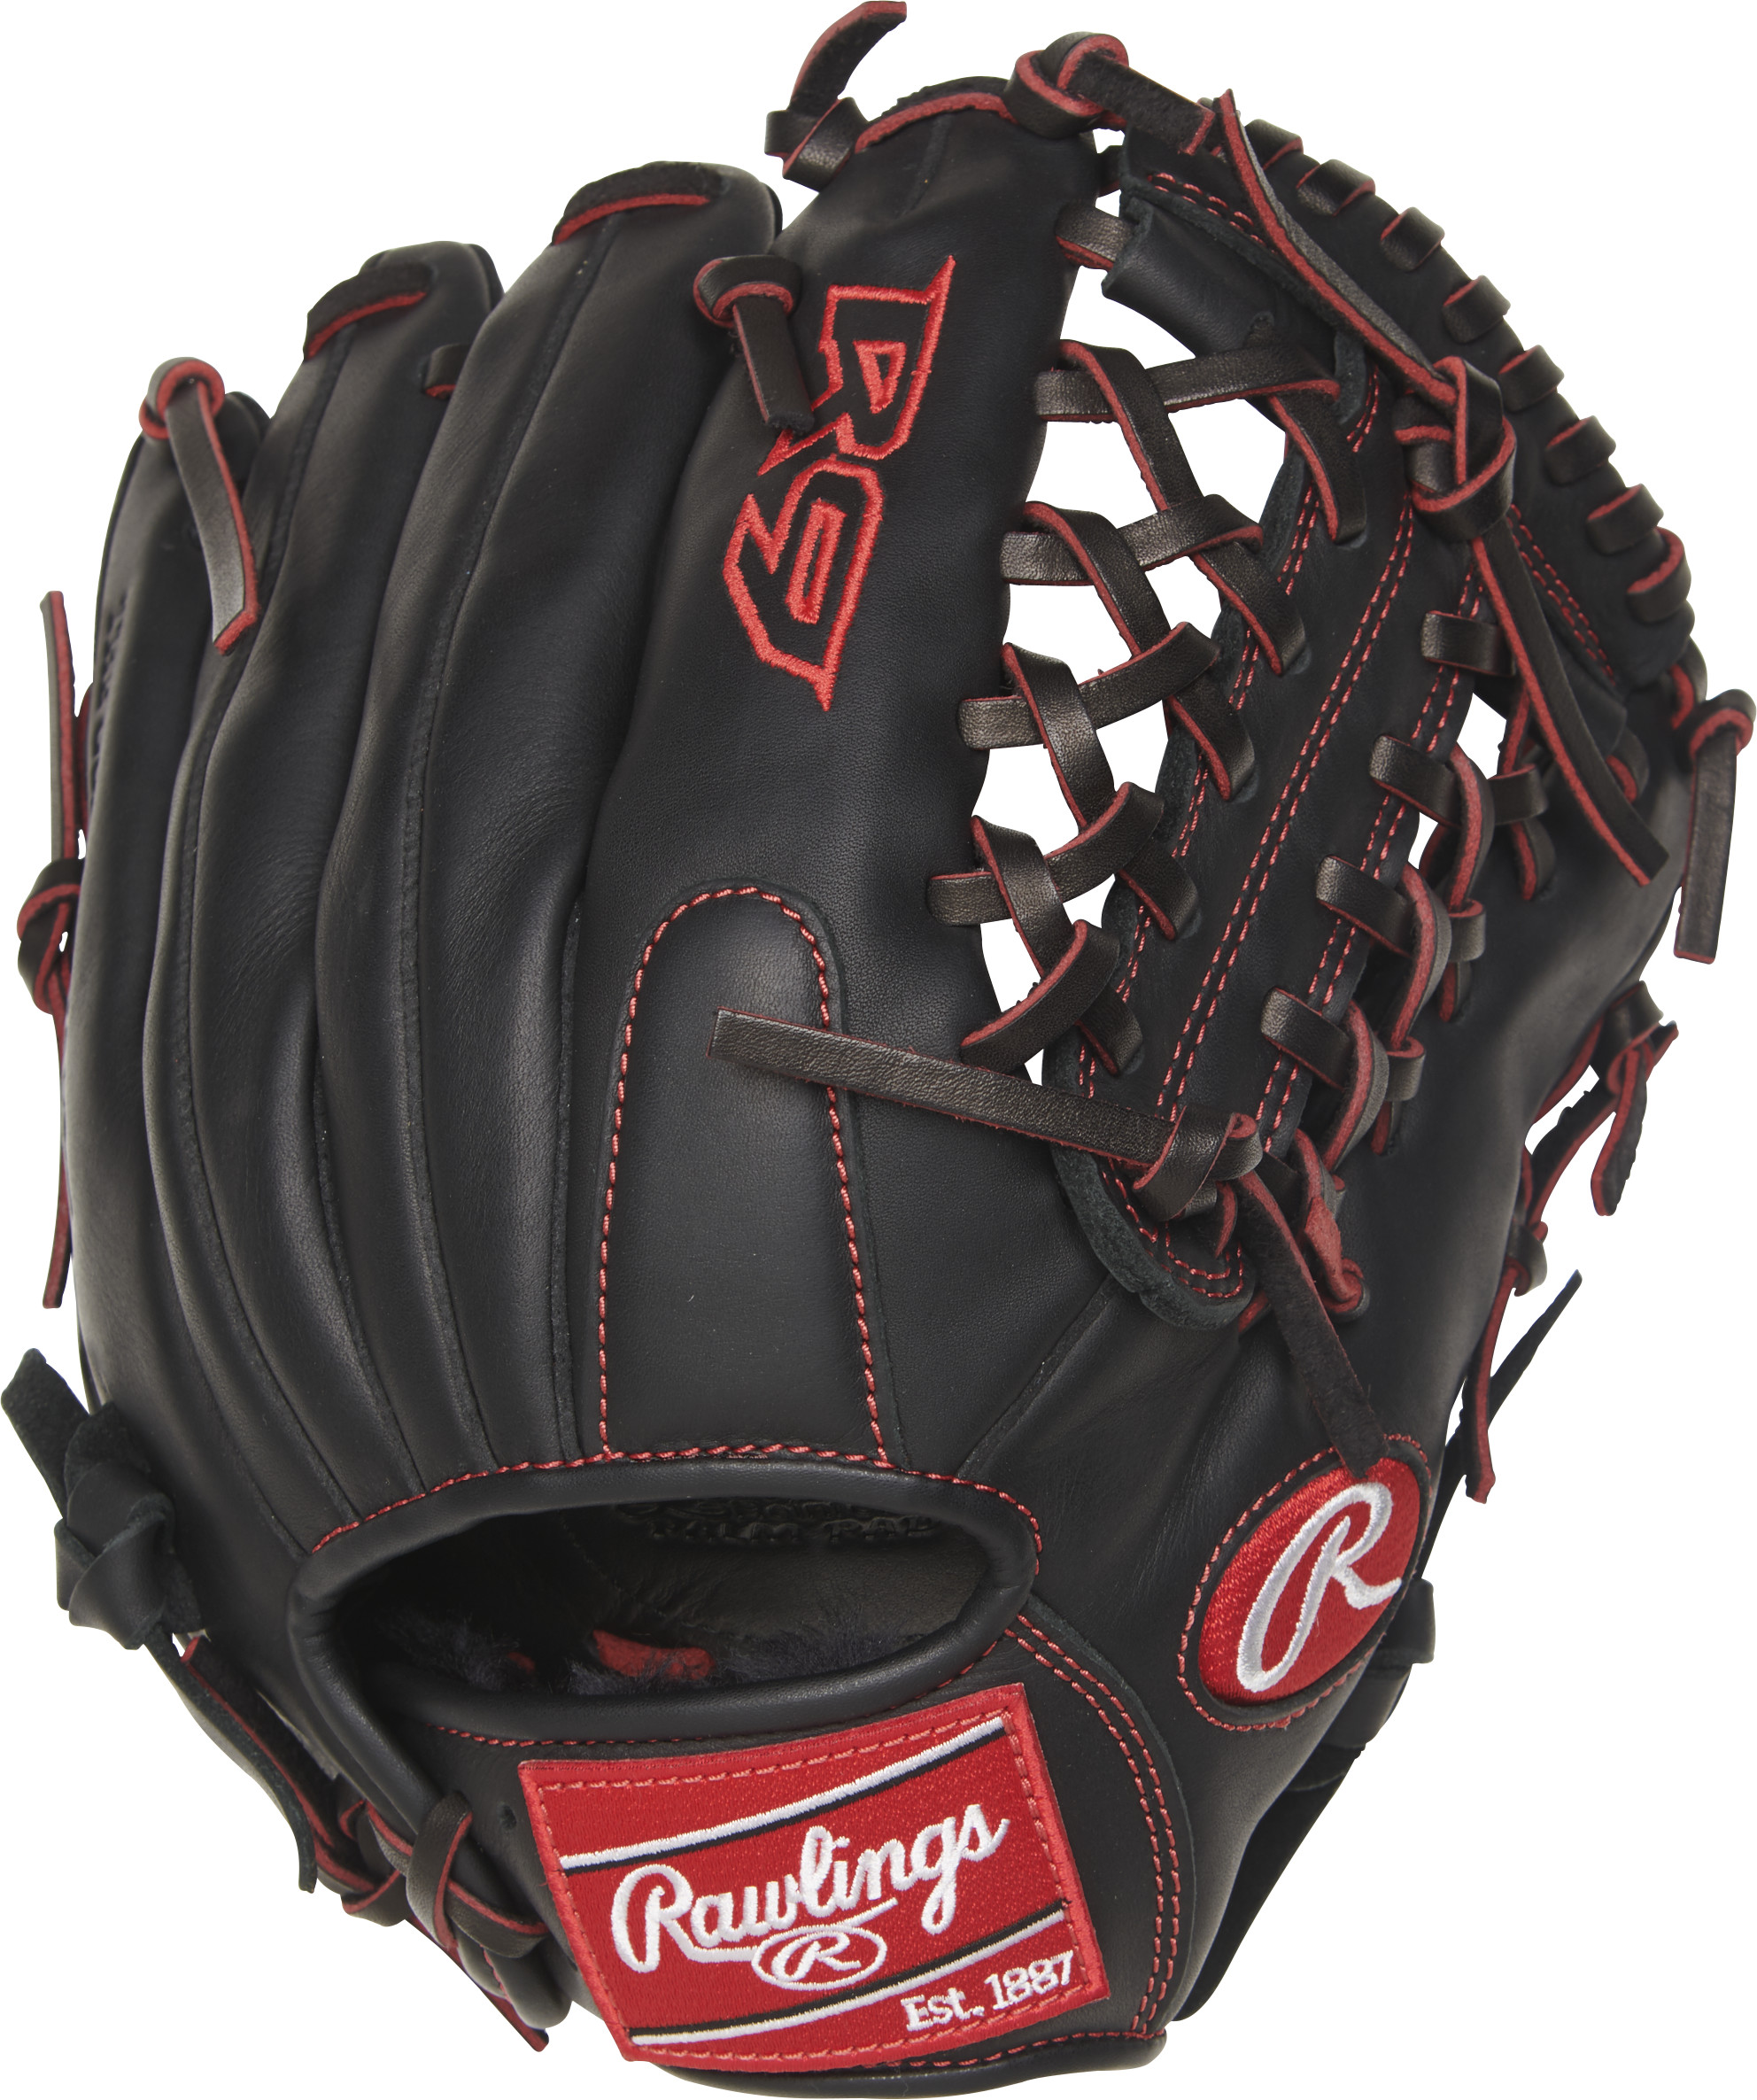 http://www.bestbatdeals.com/images/gloves/rawlings/R9YPT4-4B-2.jpg